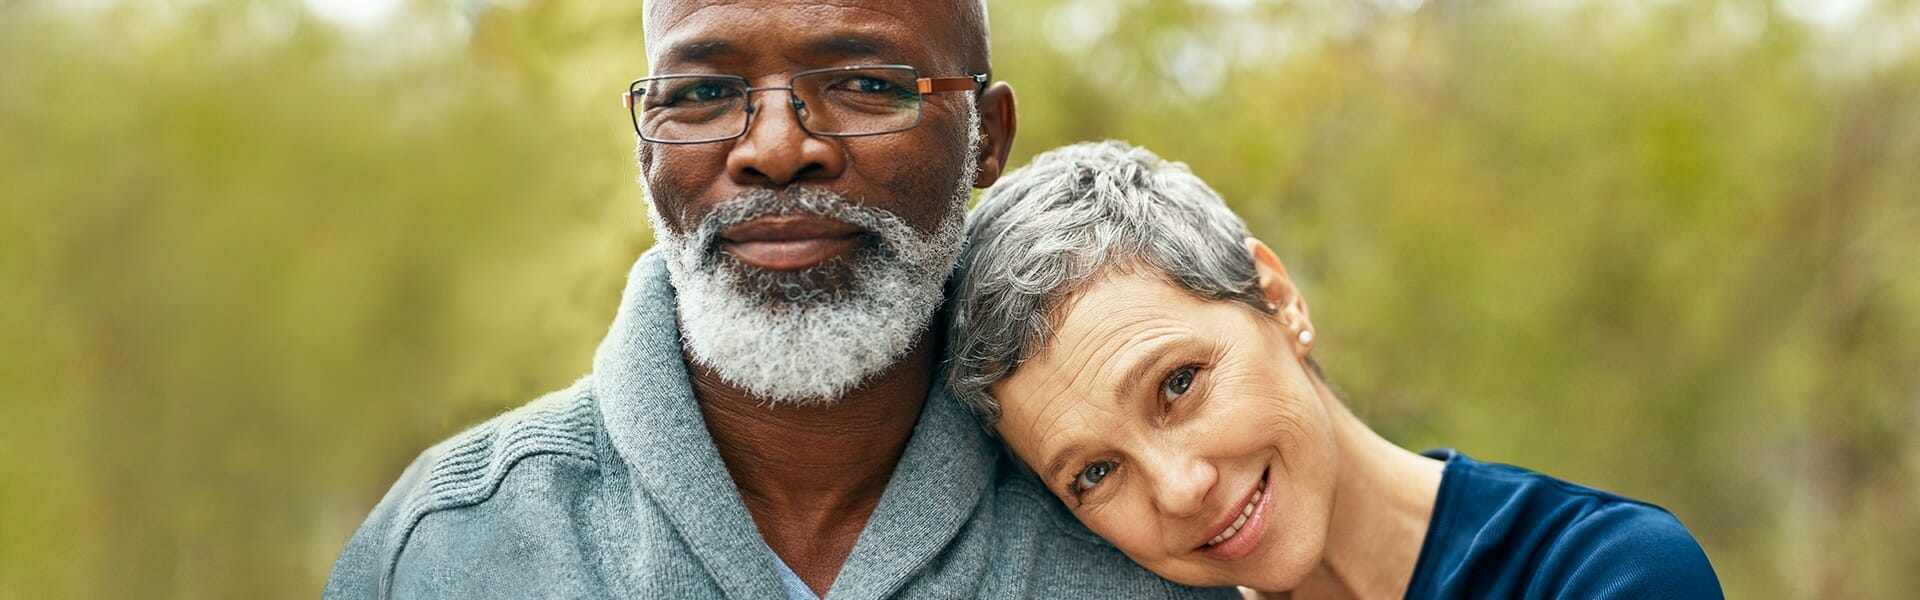 Man and woman smiling and leaning into each other